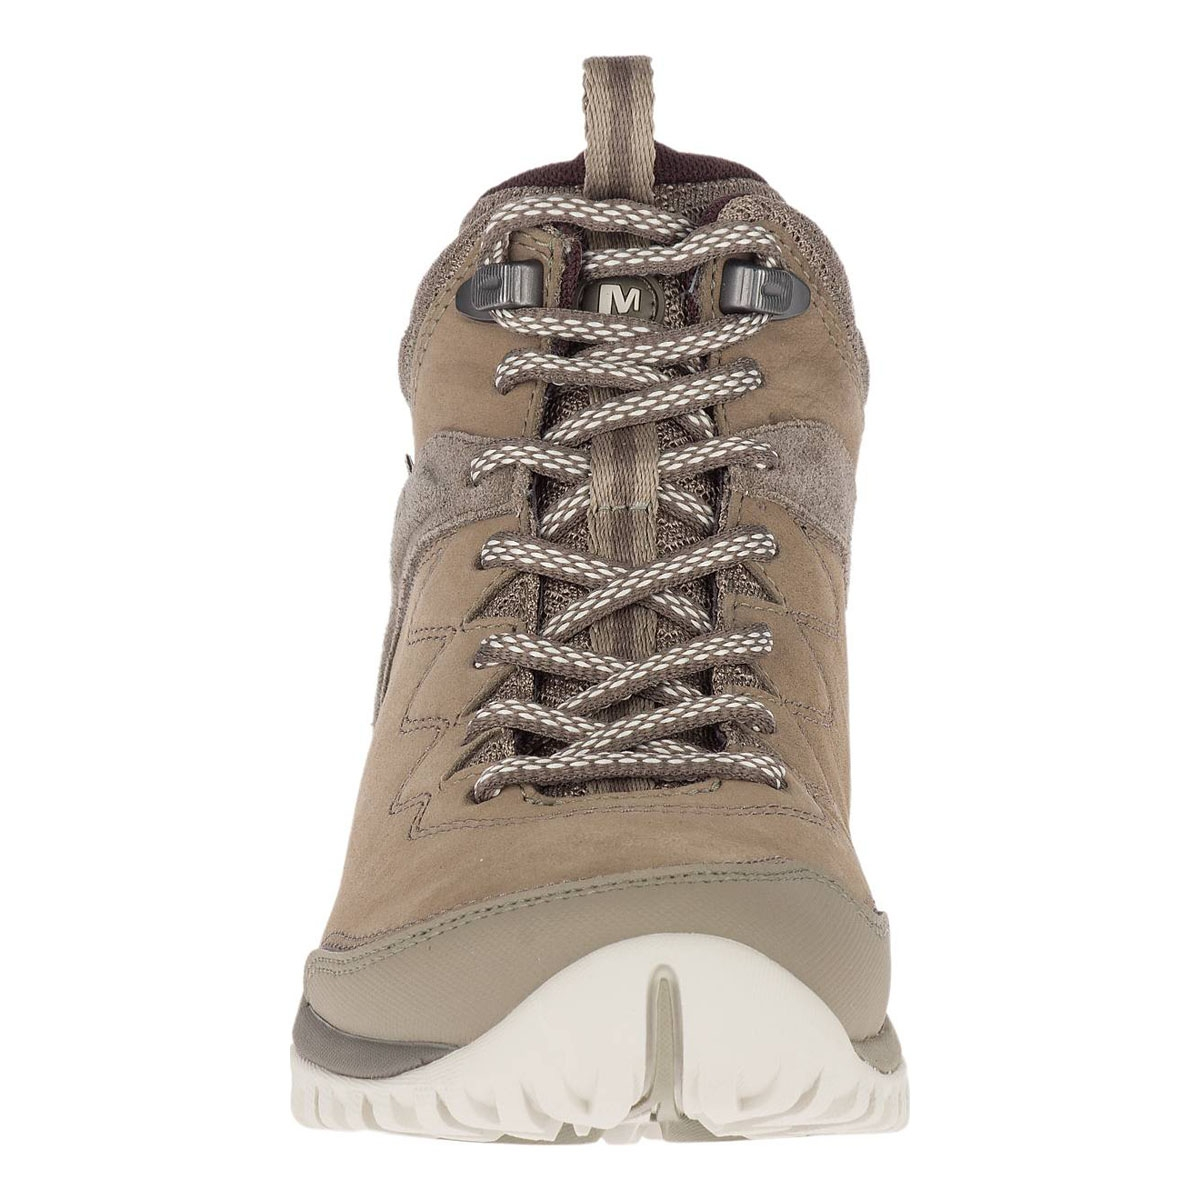 af0005e525f Merrell Siren Traveller Q2 Mid Waterproof Walking Boots (Women's) -  Brindle/Earth